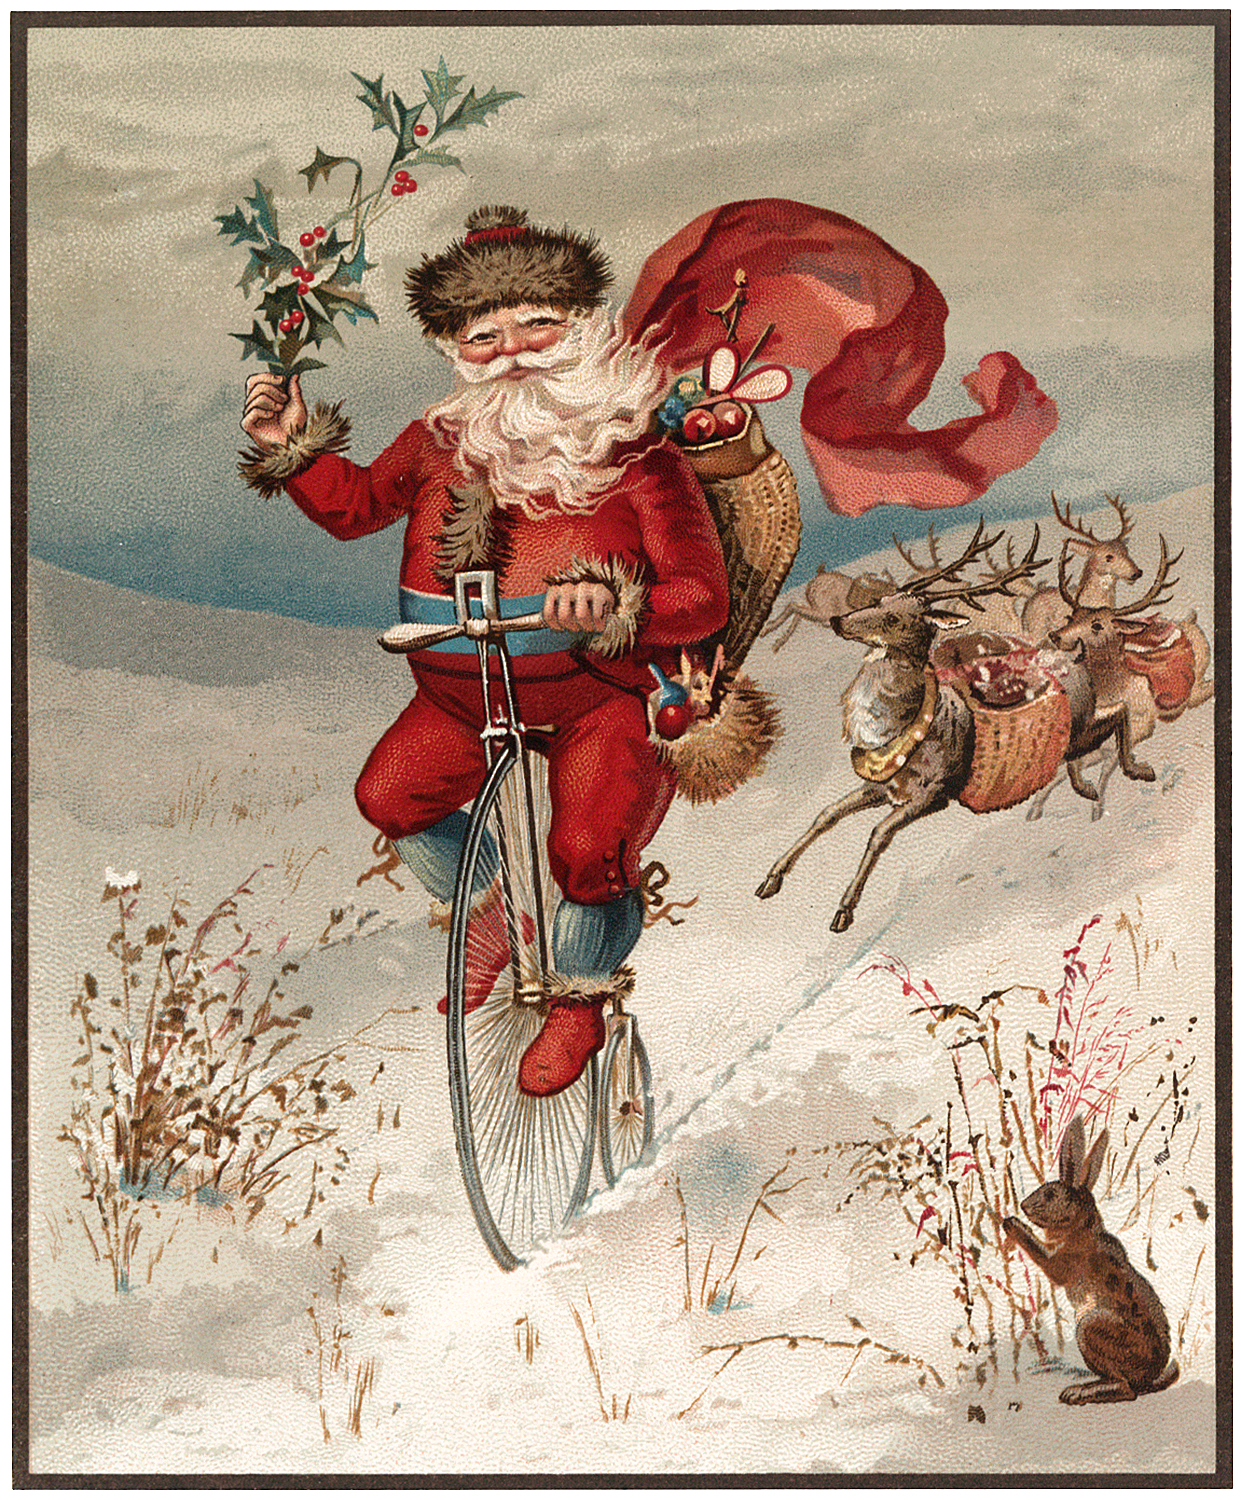 12 Santa Sleigh Images and More!.